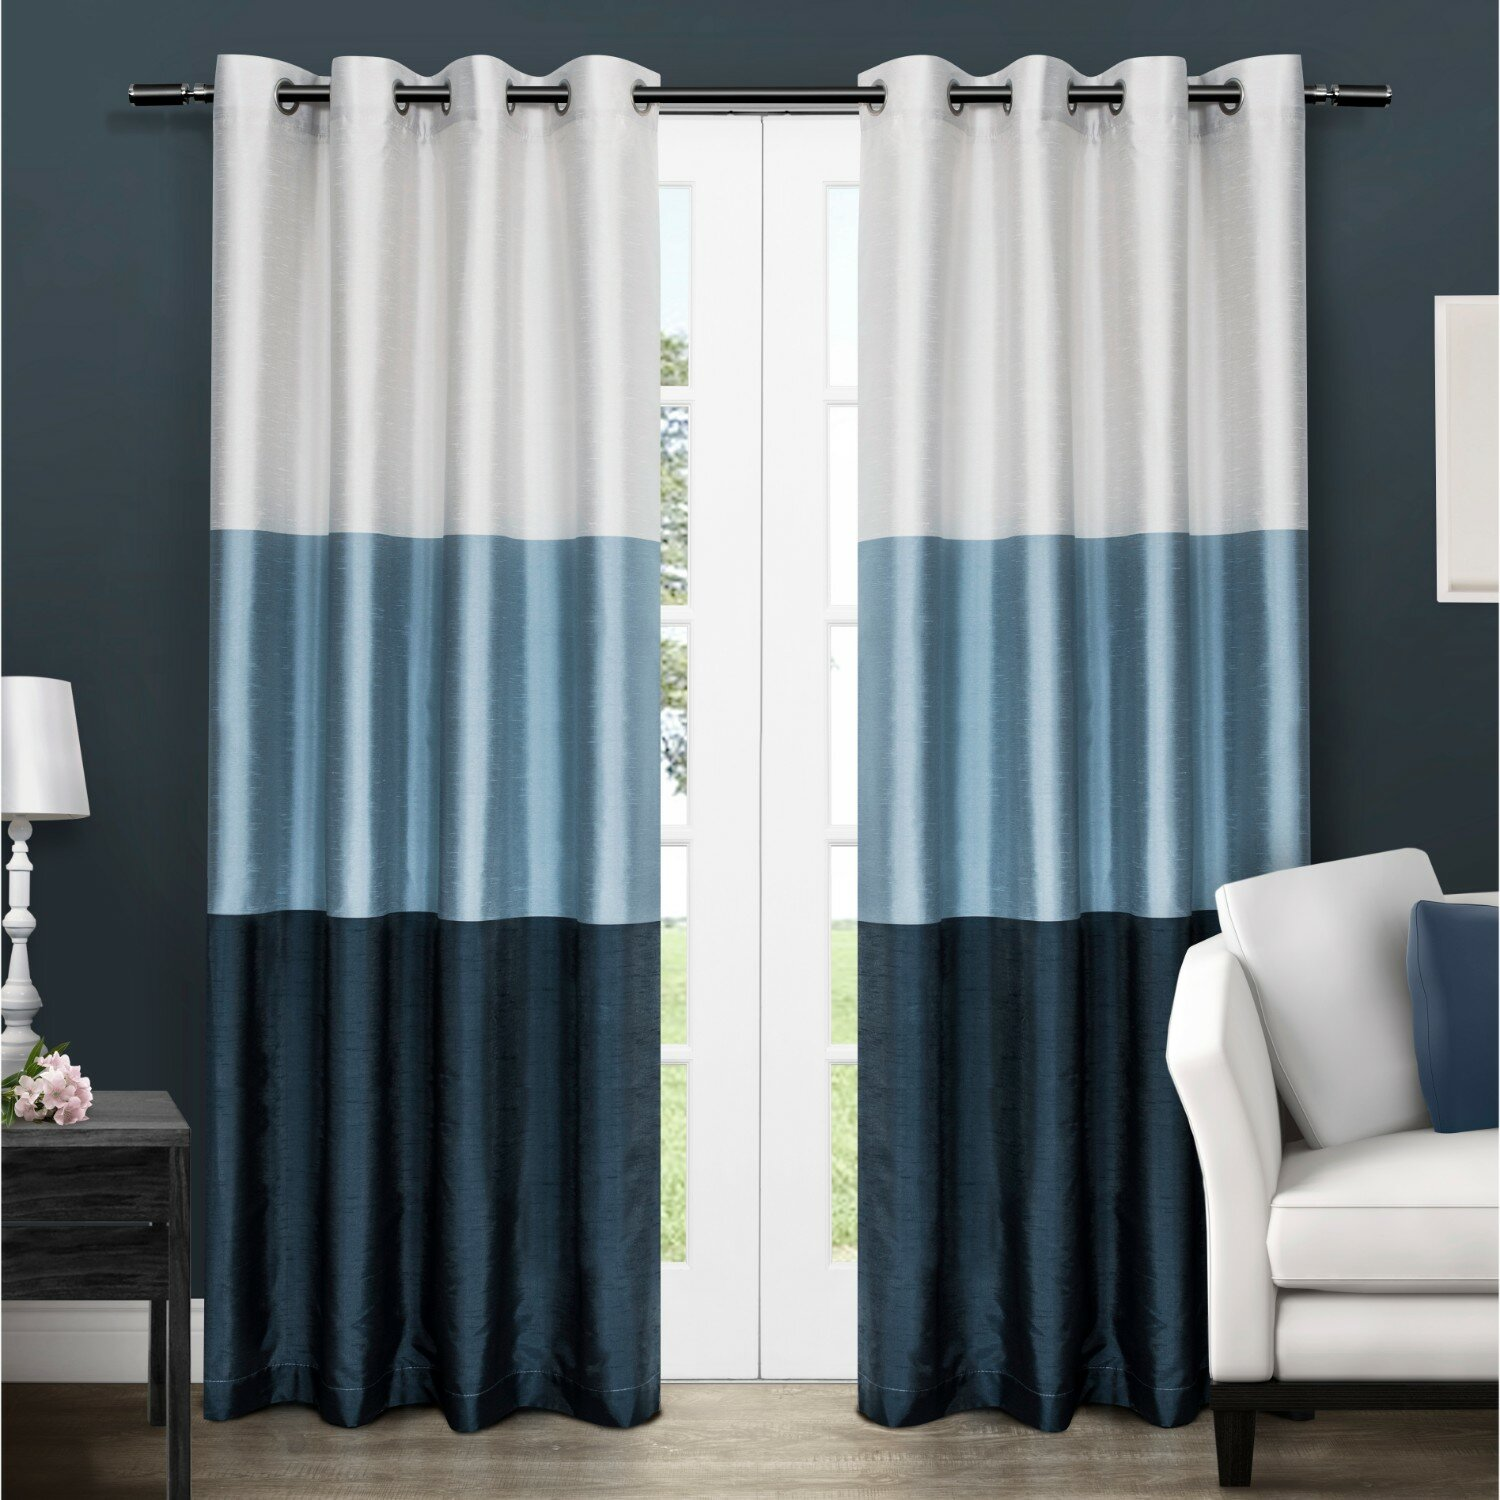 84 94 Length Curtains Drapes Wayfair Com